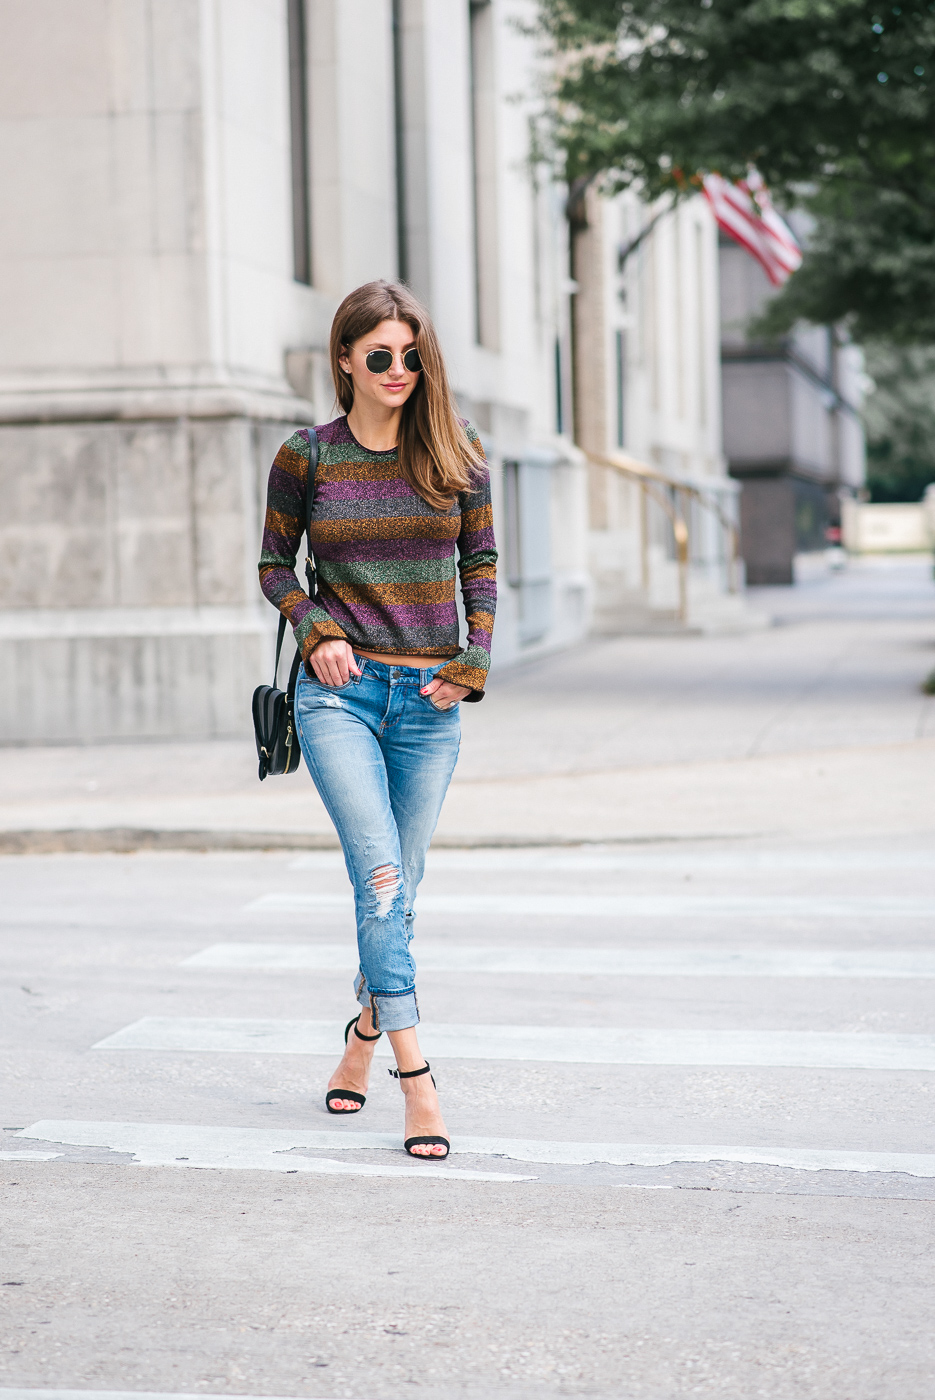 Fashionista street style in metallic long sleeve top and denim